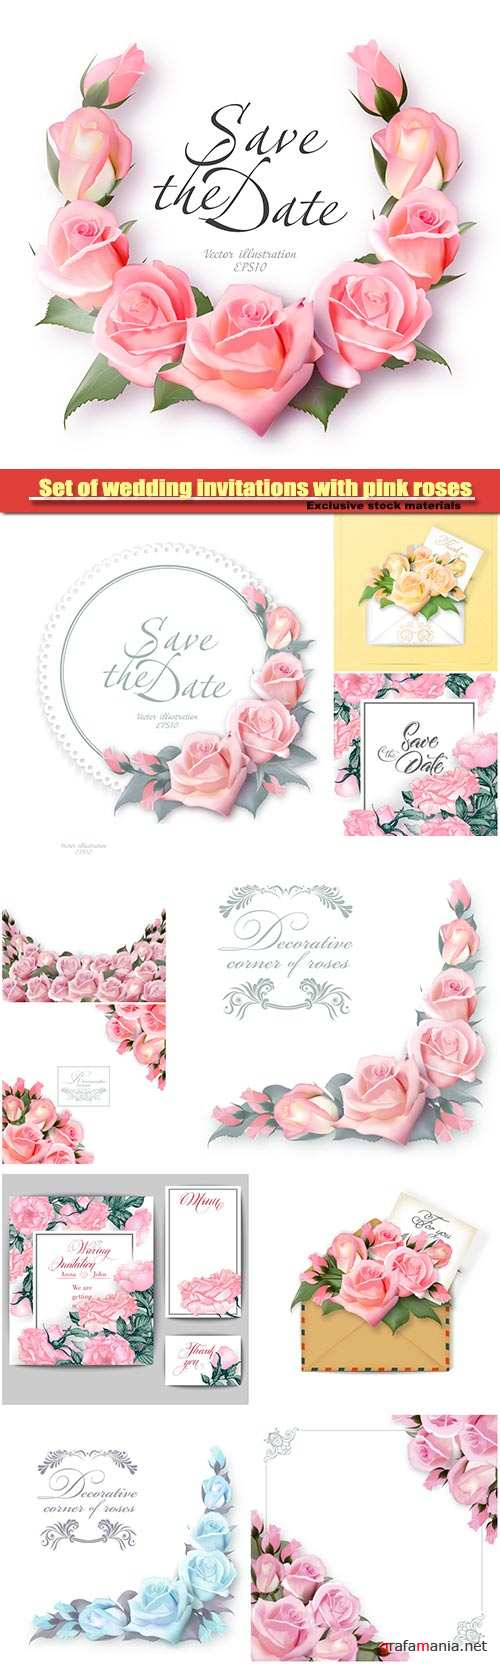 Set of wedding invitations with pink roses, vector template